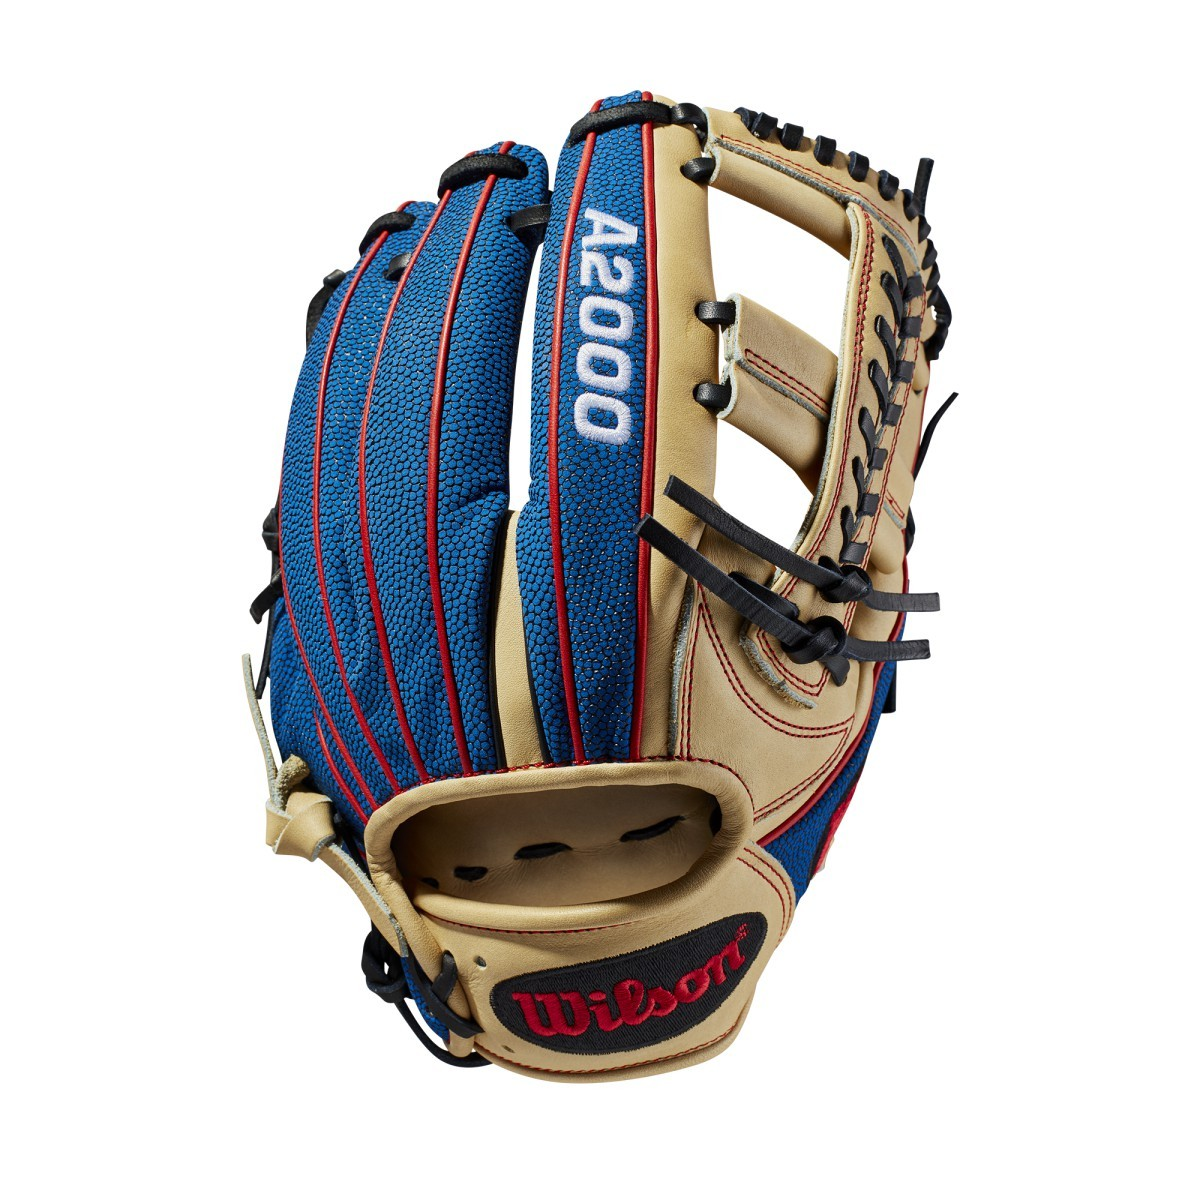 WILSON A2000 NOVEMBER 2018 GLOVE OF THE MONTH 1785 LIMITED EDITION 11 75